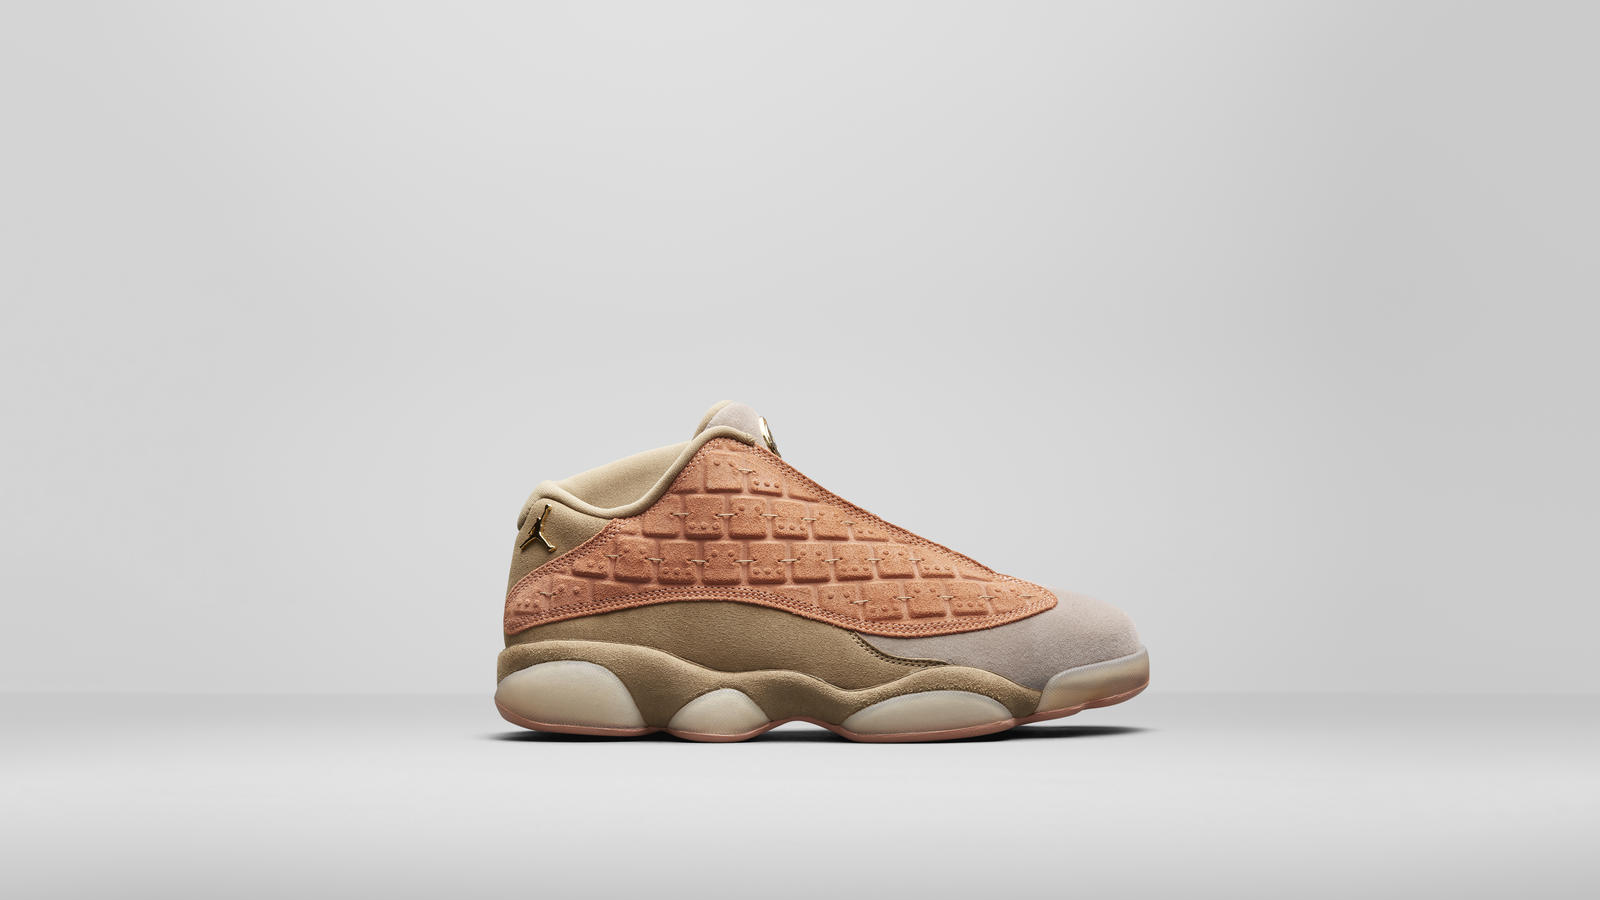 CLOT x Air Jordan XIII Low 4